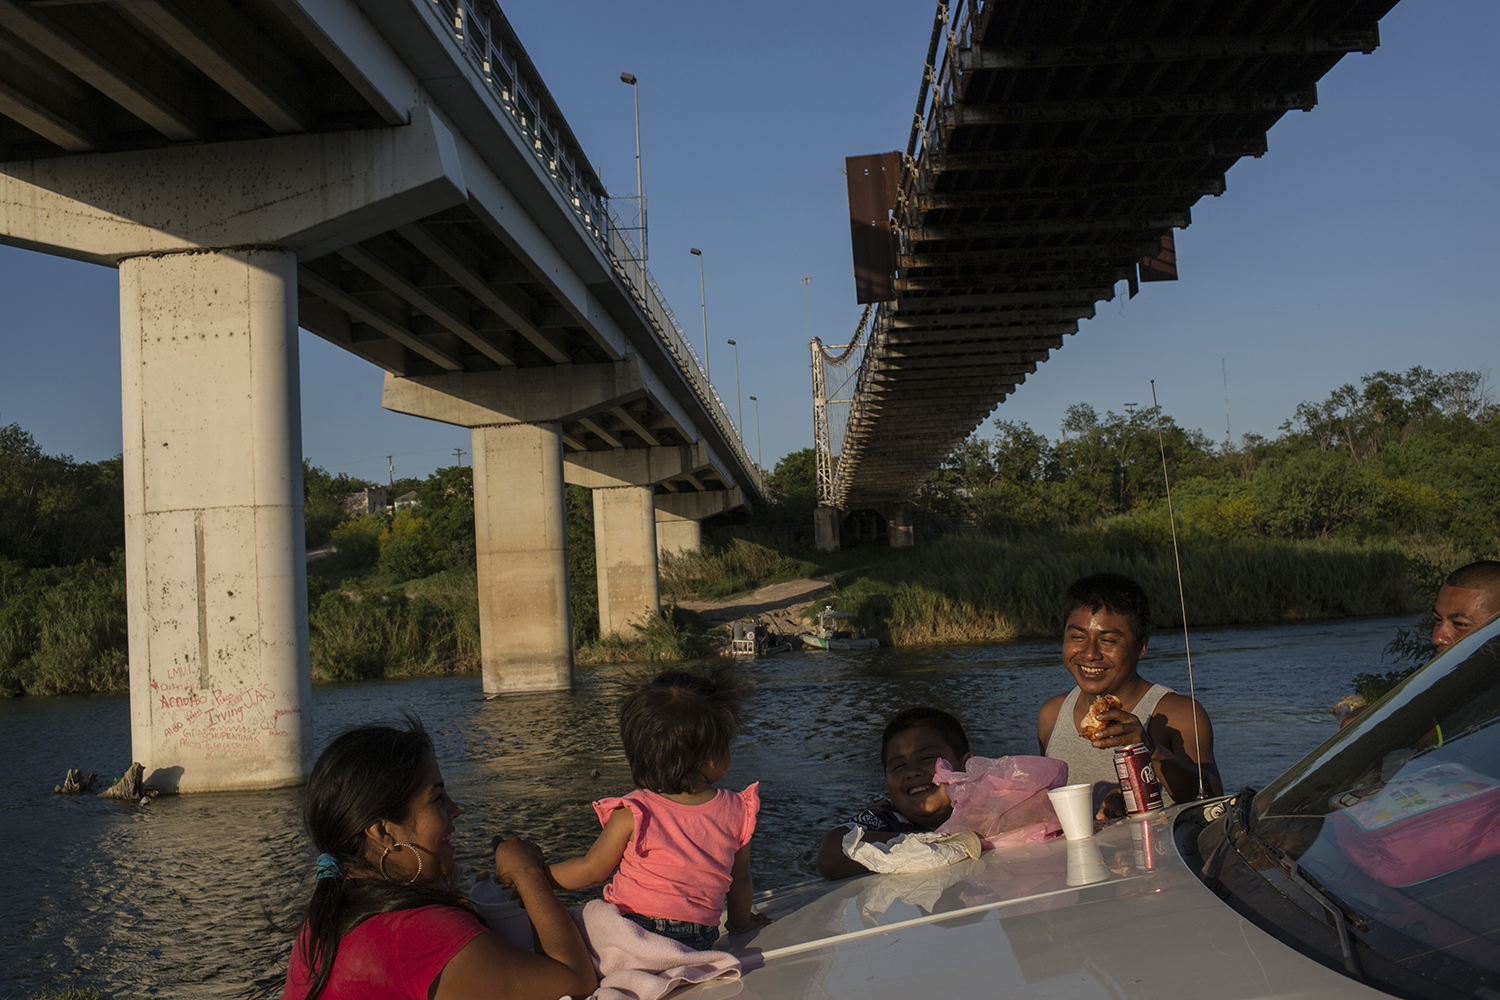 "FILE - This March 22, 2017, file photo shows a family having a picnic on the bank of the Rio Grande river in Miguel Aleman, Tamaulipas state, Mexico, located across from Roma, Texas. President Donald Trump will face many obstacles in building his ""big, beautiful wall"" on the U.S.-Mexico border, including how to pay for it and how to contend with unfavorable geography and the legal battles ahead.  (AP Photo/Rodrigo Abd, File)"